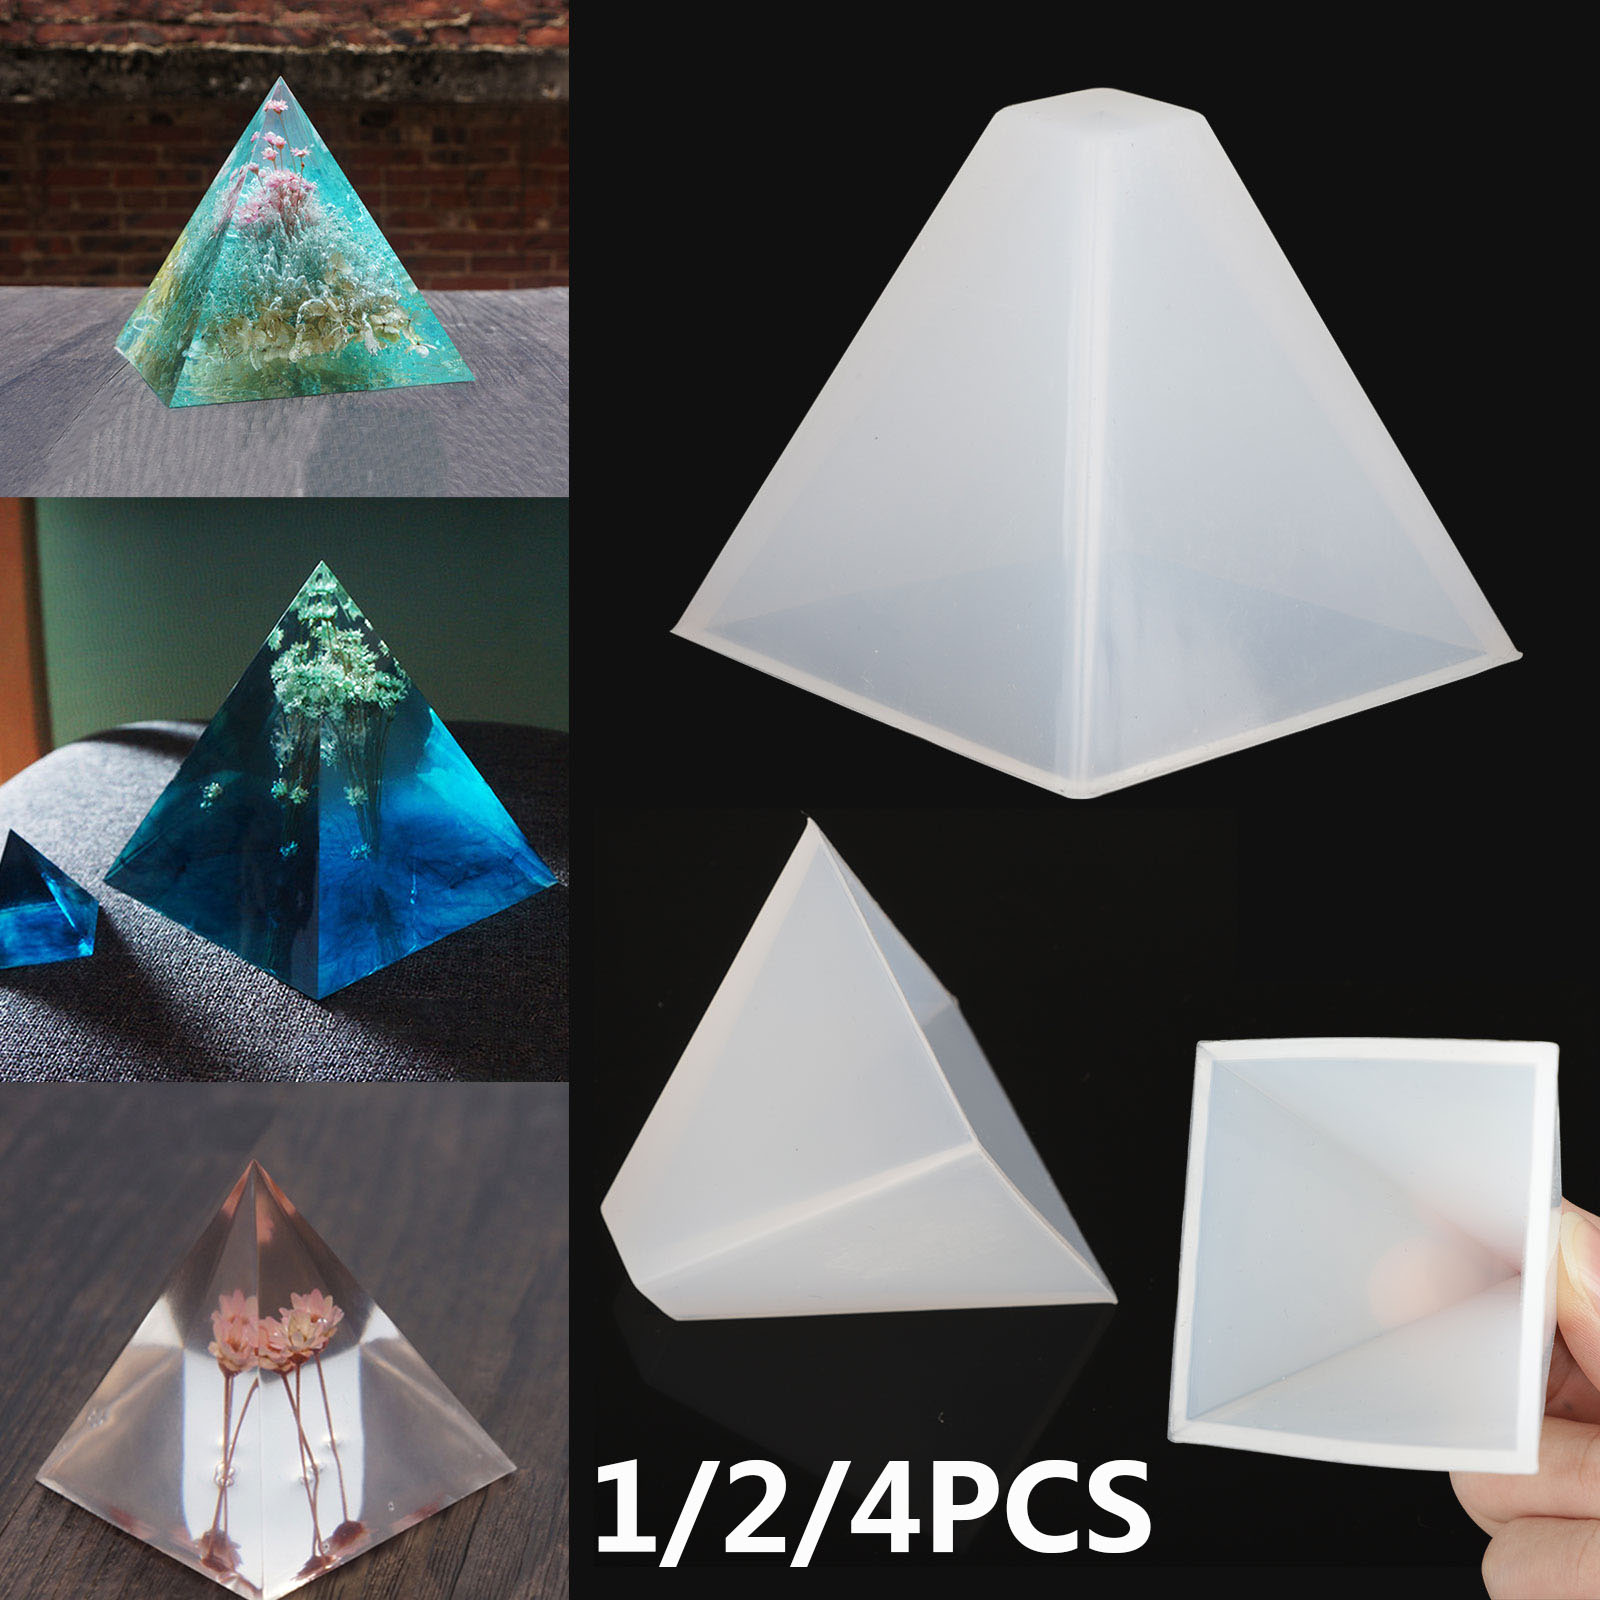 Silicone Mini Pyramid Jewelry Making Mould Mold for DIY Necklace Earrings